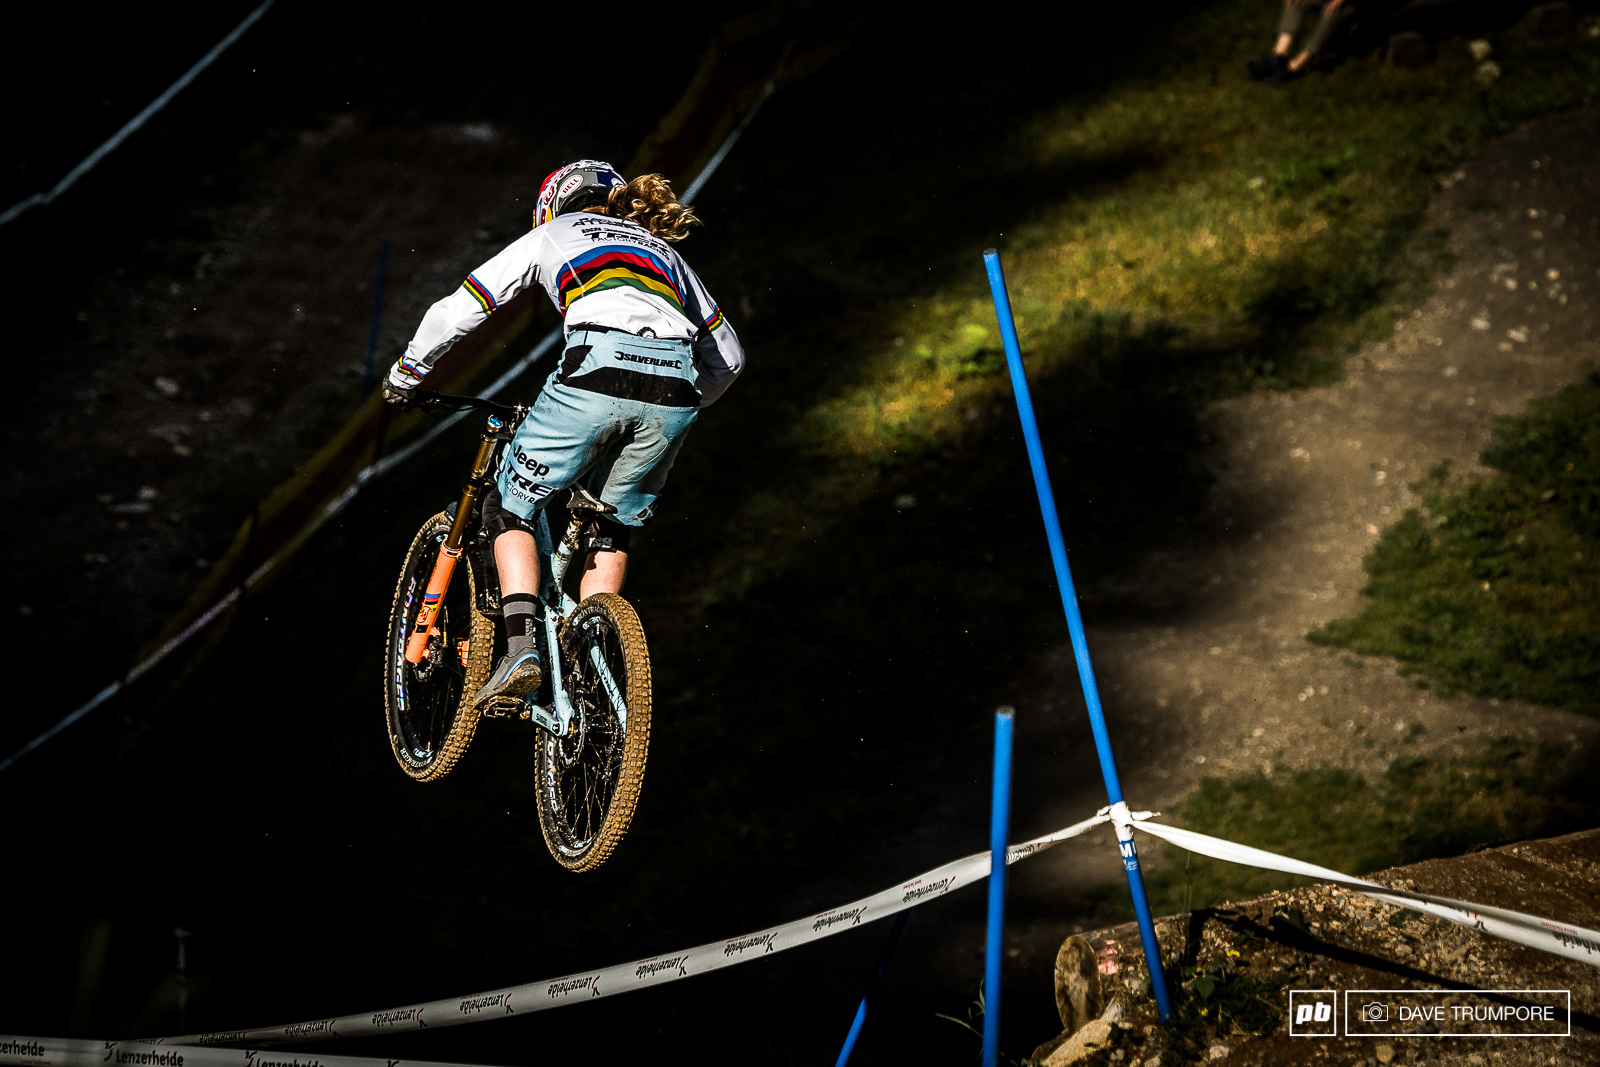 Rachel Atherton has made a remarkable return from injury to take 2nd on the day and only half a second back from the win.